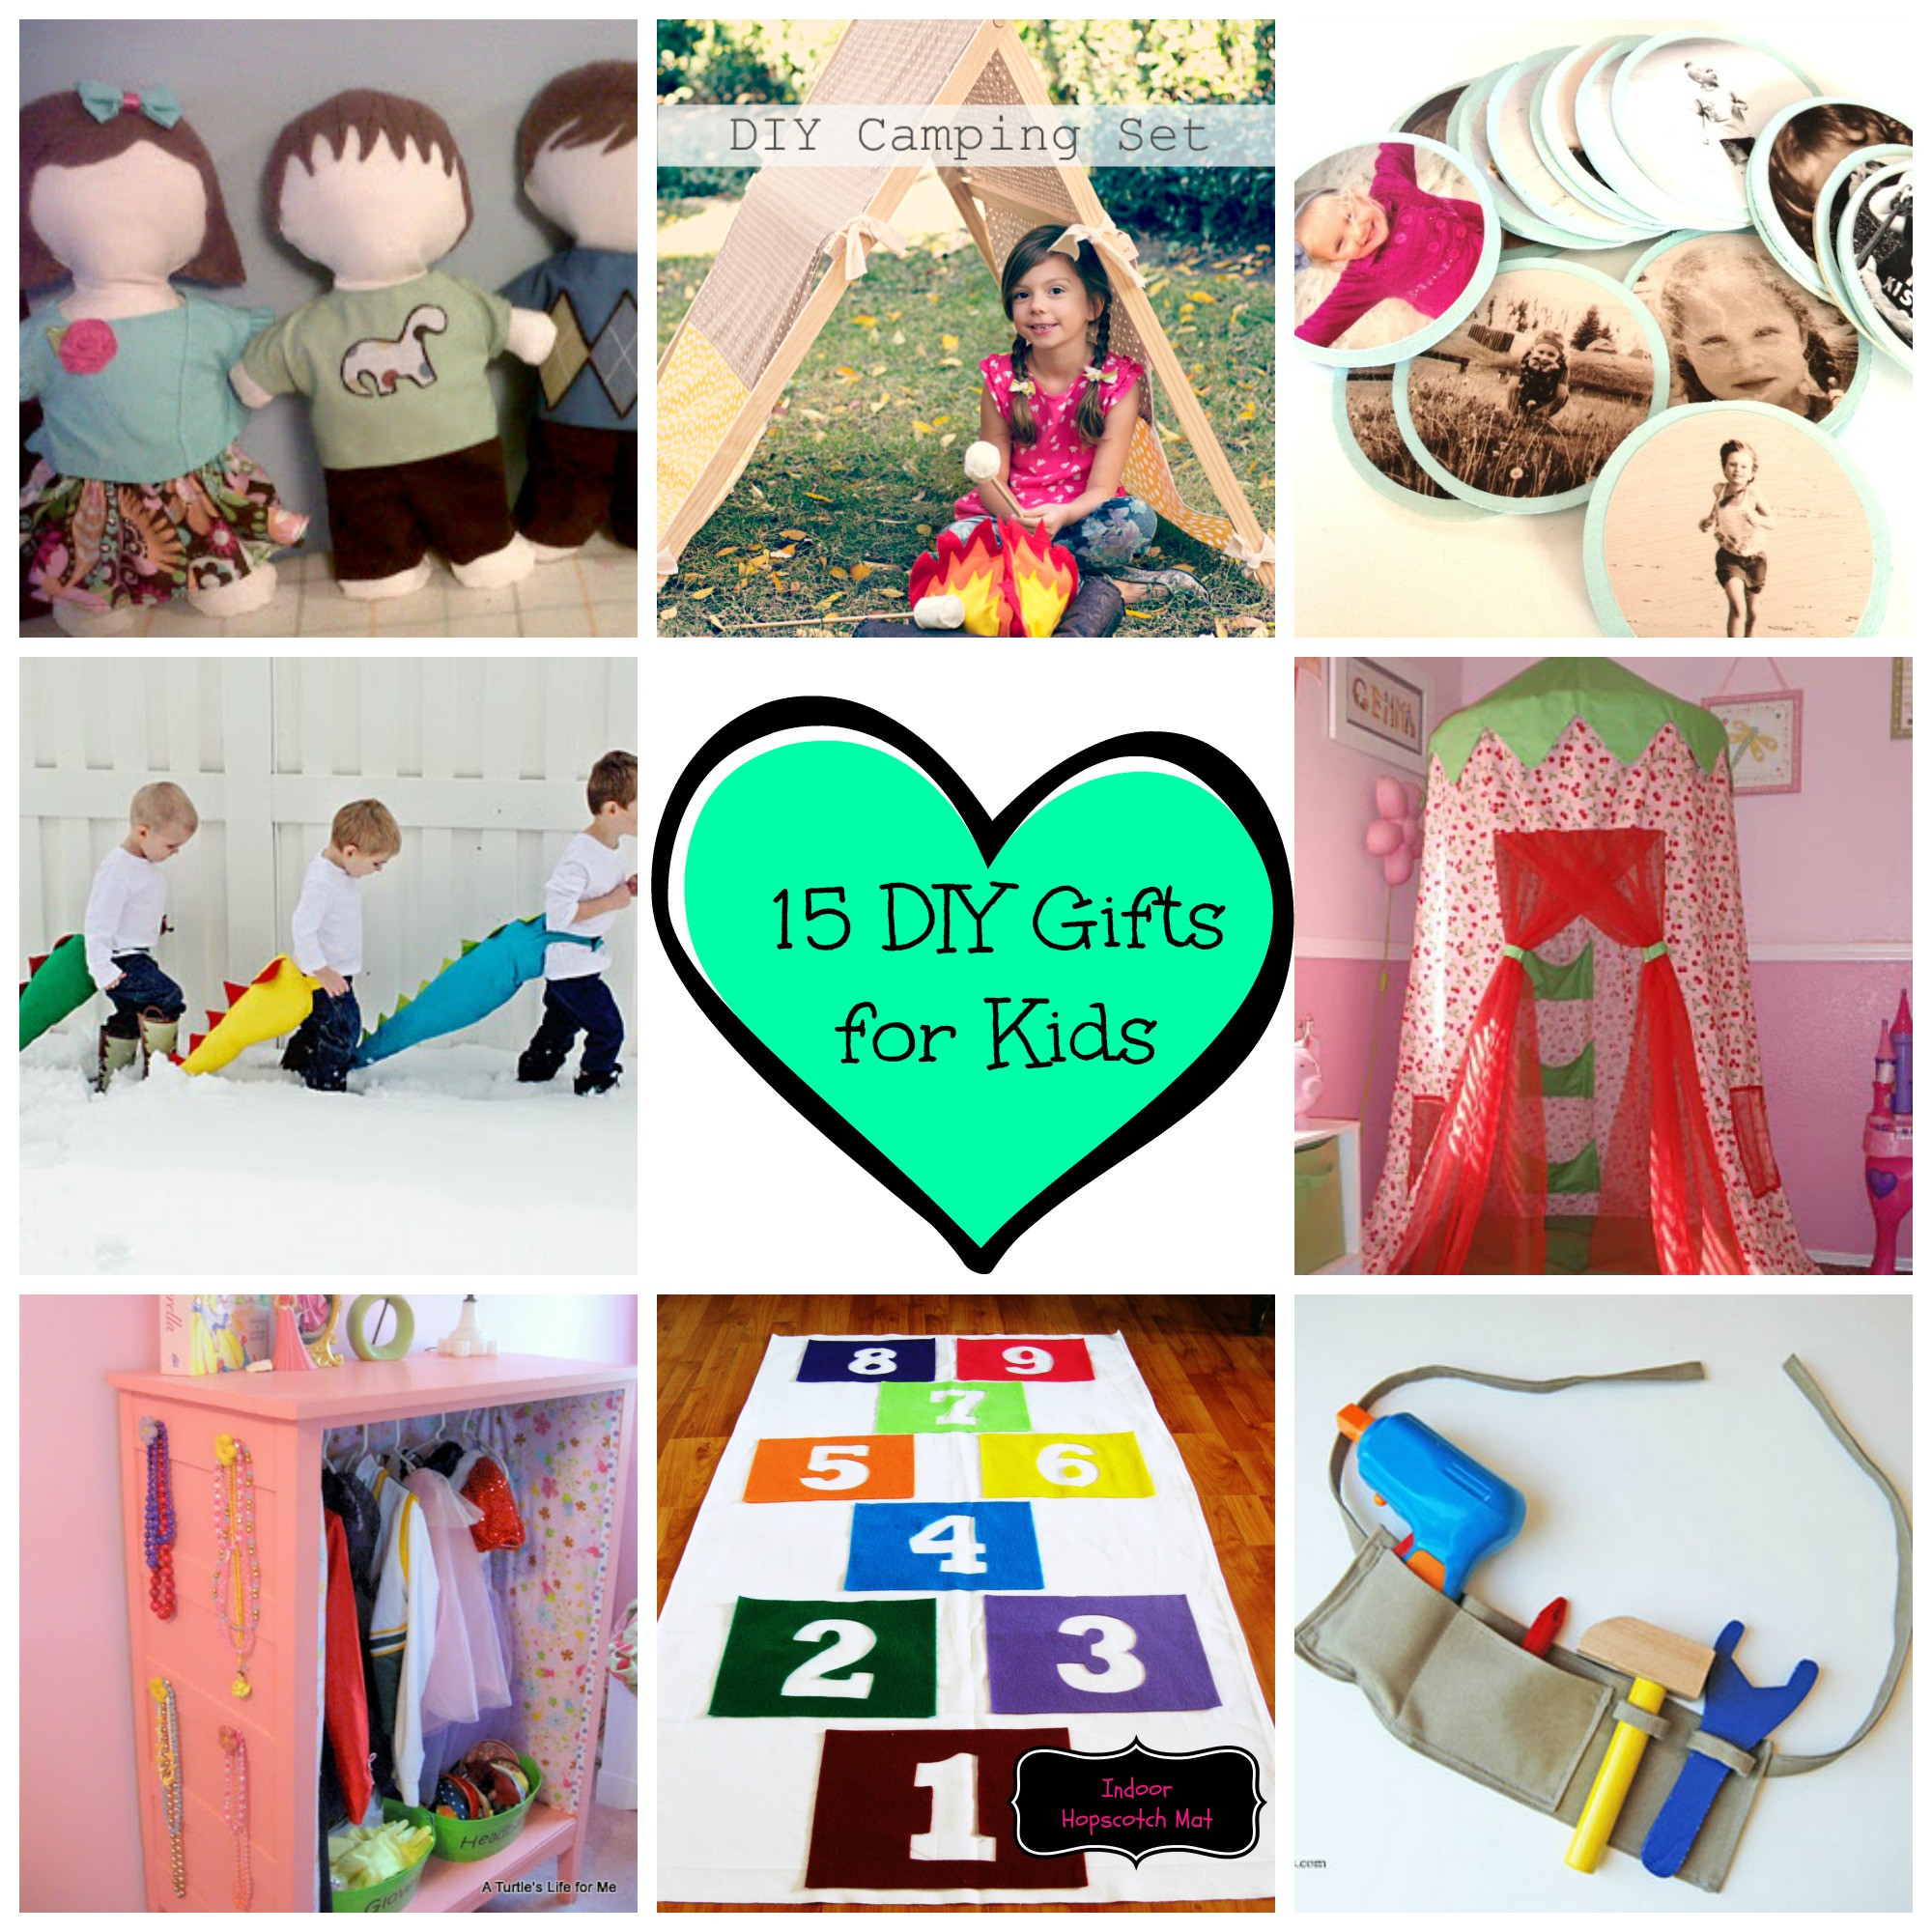 Best ideas about DIY Kids Gifts . Save or Pin 15 Great DIY Kids Gifts – Somewhere in the Middle Now.